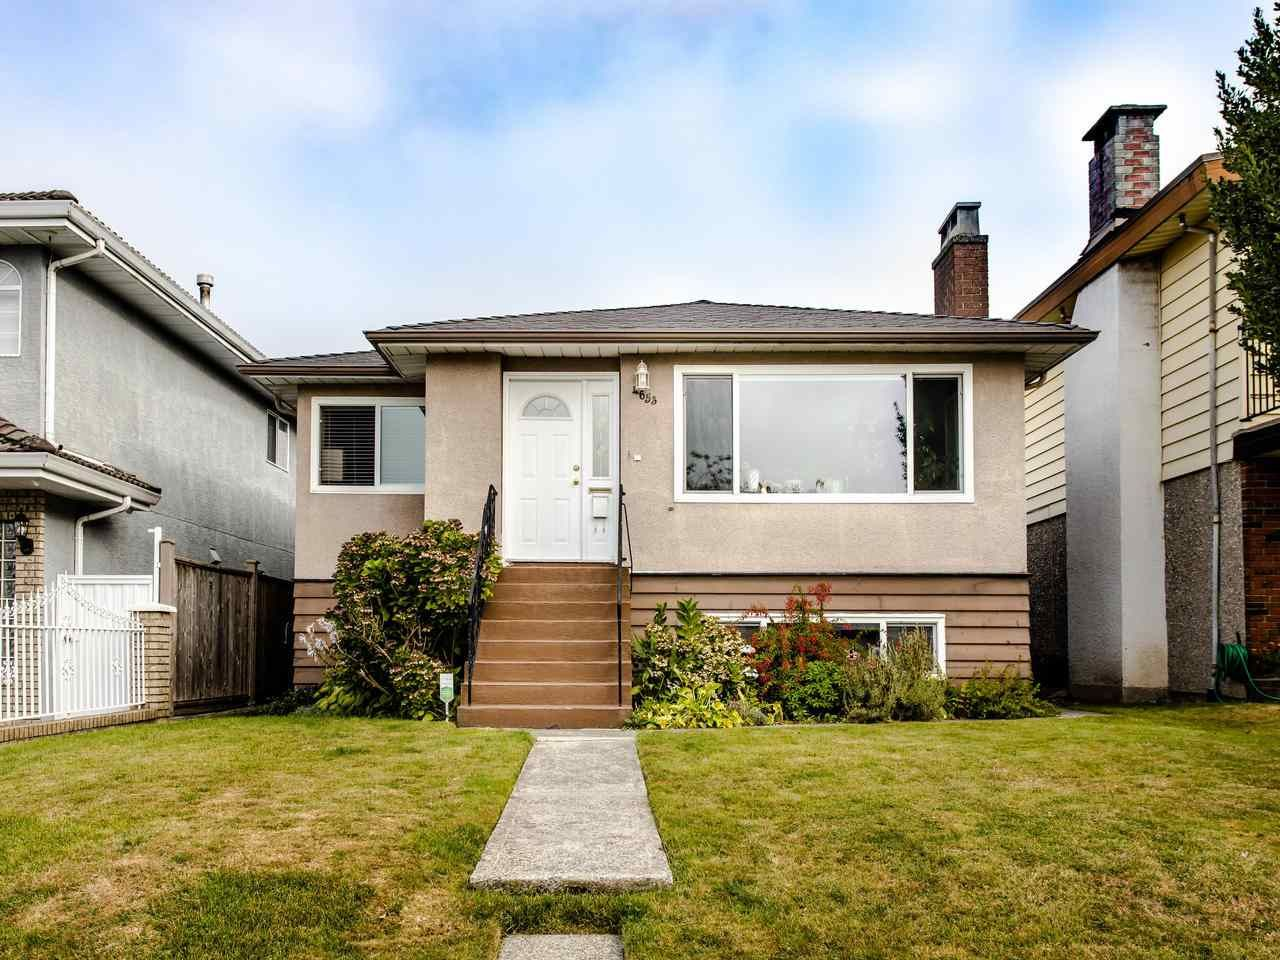 Photo 1: Photos: 4653 UNION STREET in Burnaby: Capitol Hill BN House for sale (Burnaby North)  : MLS®# R2493161